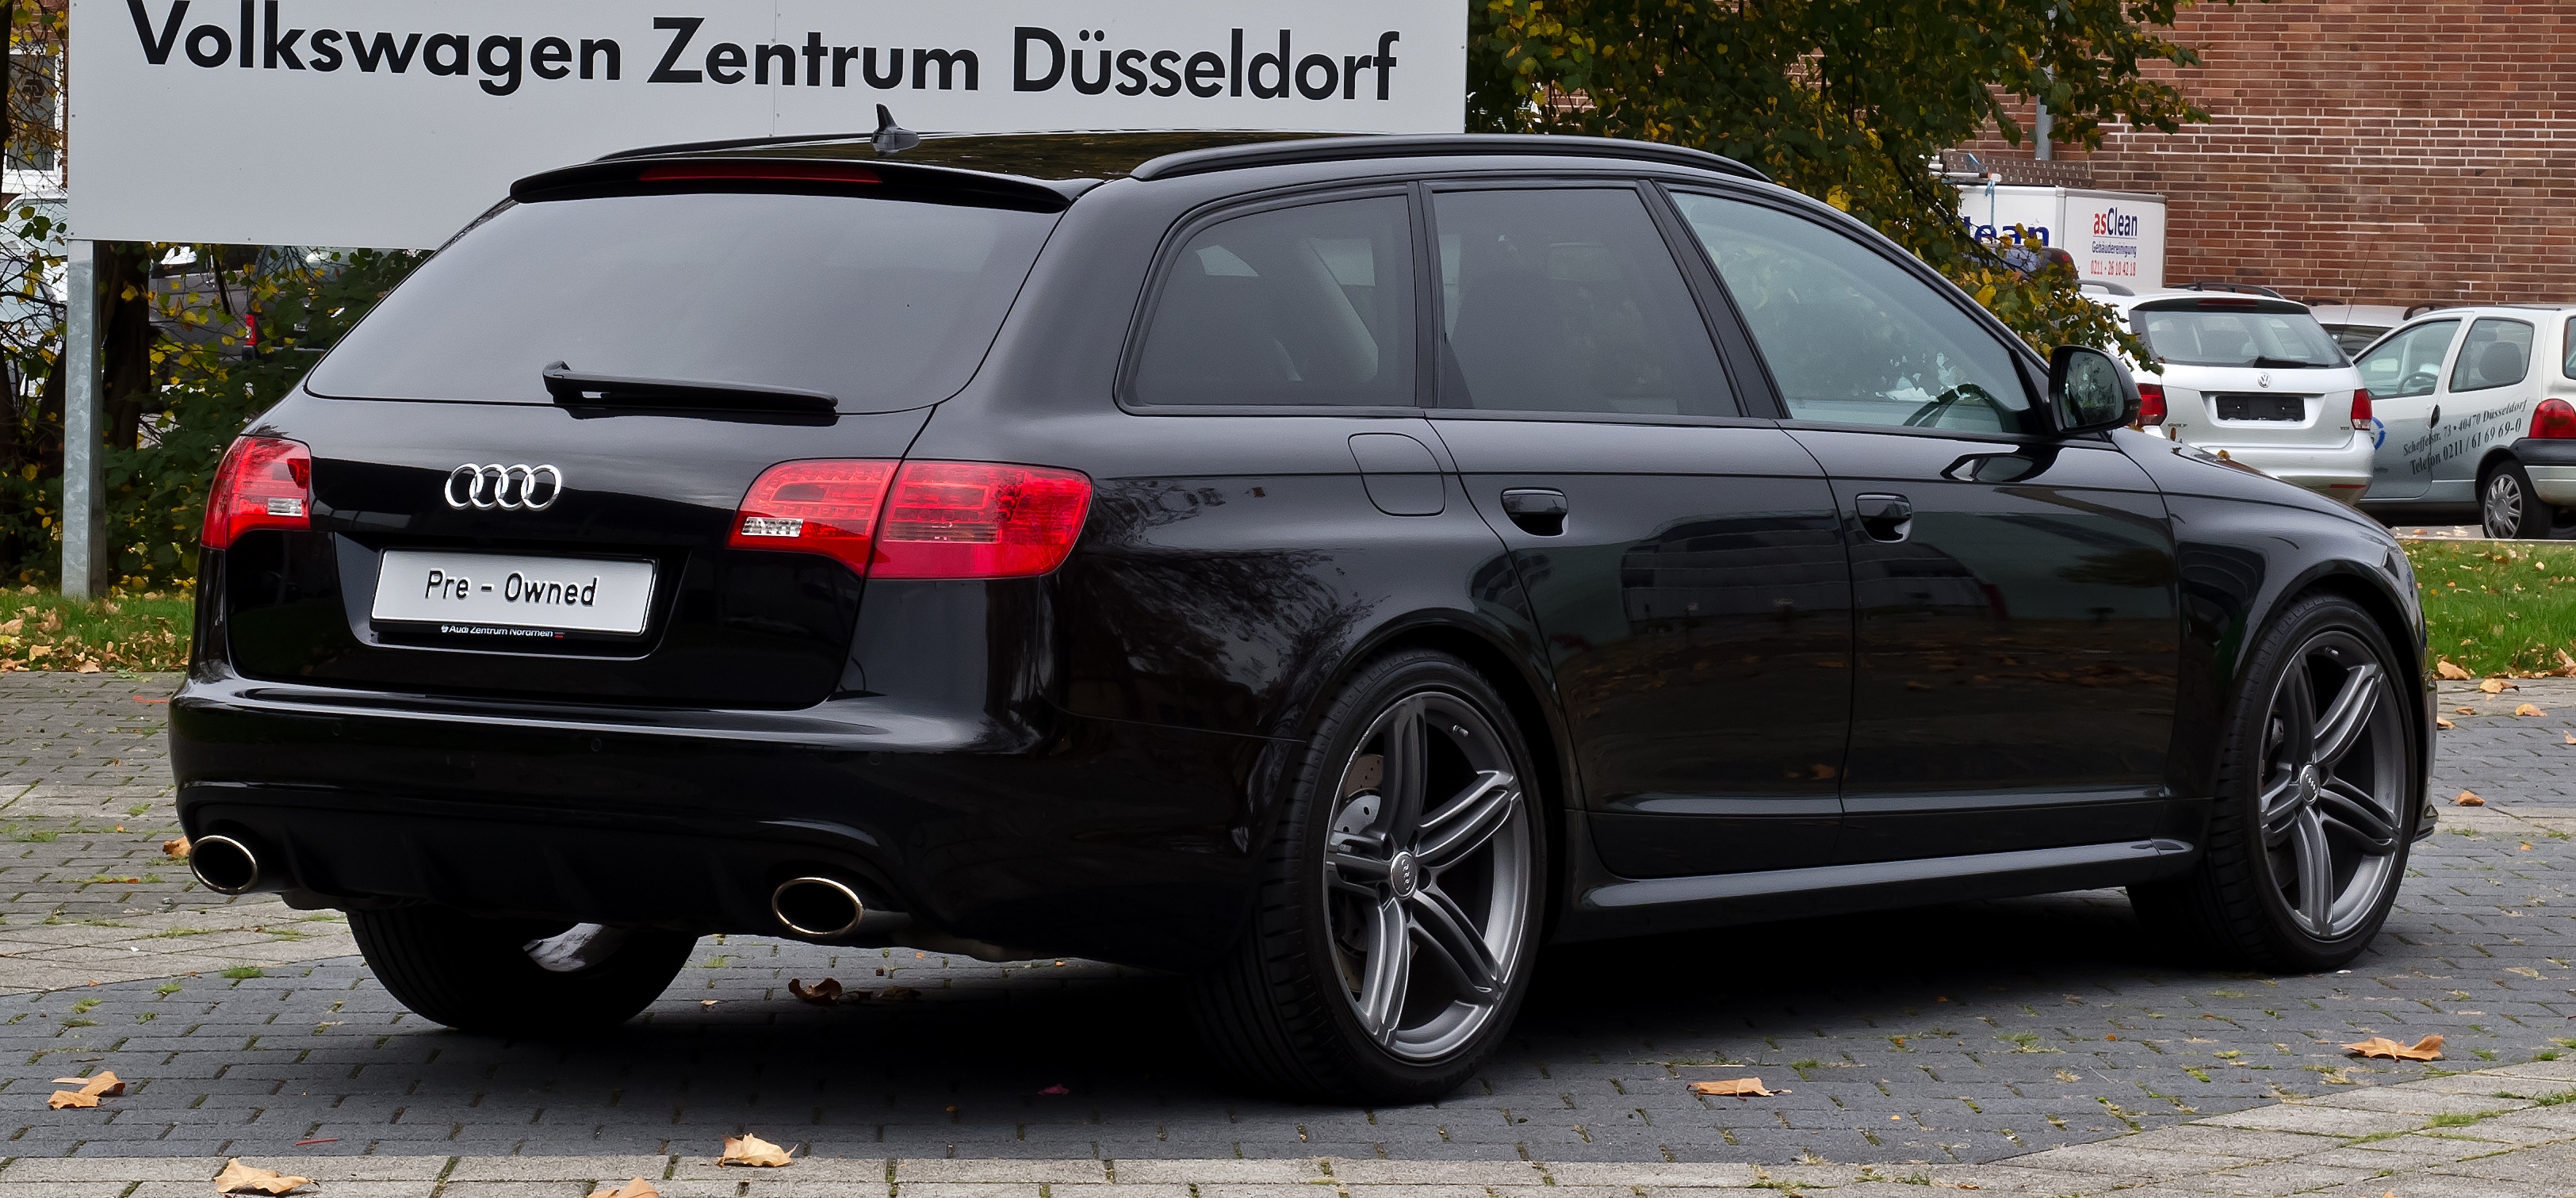 file audi rs 6 avant c6 heckansicht 1 26 oktober 2012 d wikimedia commons. Black Bedroom Furniture Sets. Home Design Ideas